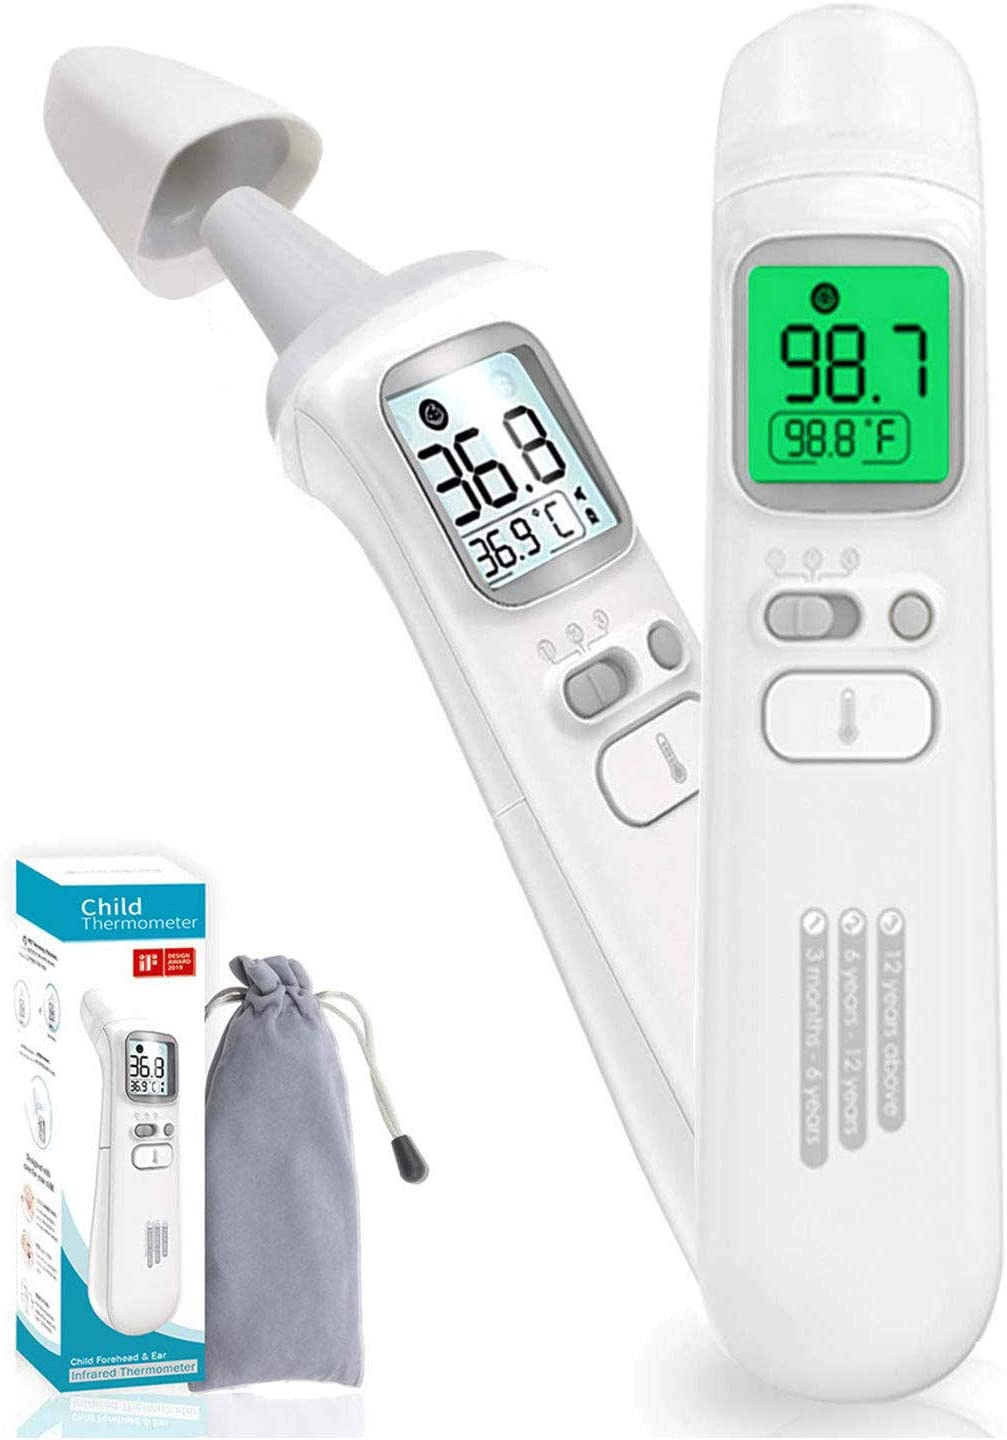 Digital Non-Contact Forehead Infrared Thermometer,with FDA /& CE Certified,Instant Readings with LCD Display,3 Color Screen,Fever Alarm for Baby Kids /& Adults US Stock Arrive Within 3-7 Days